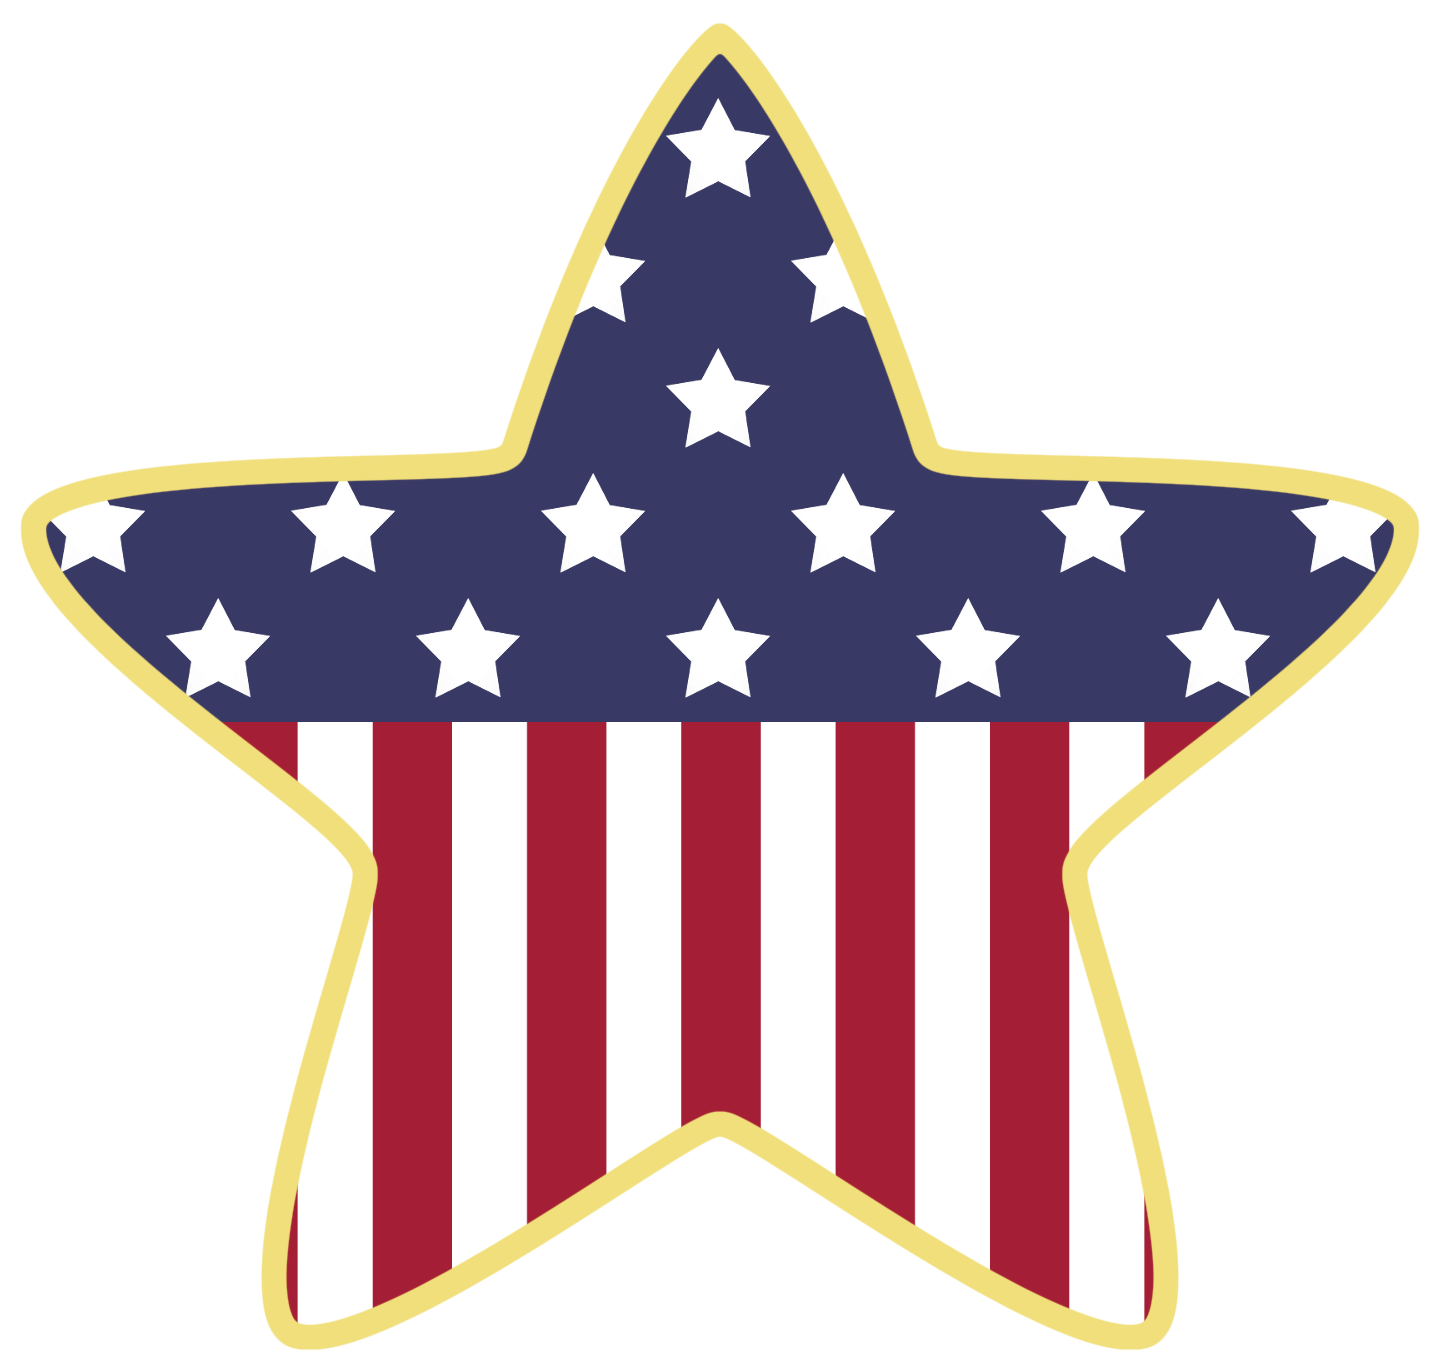 American star decoration png. Clipart fireworks flag